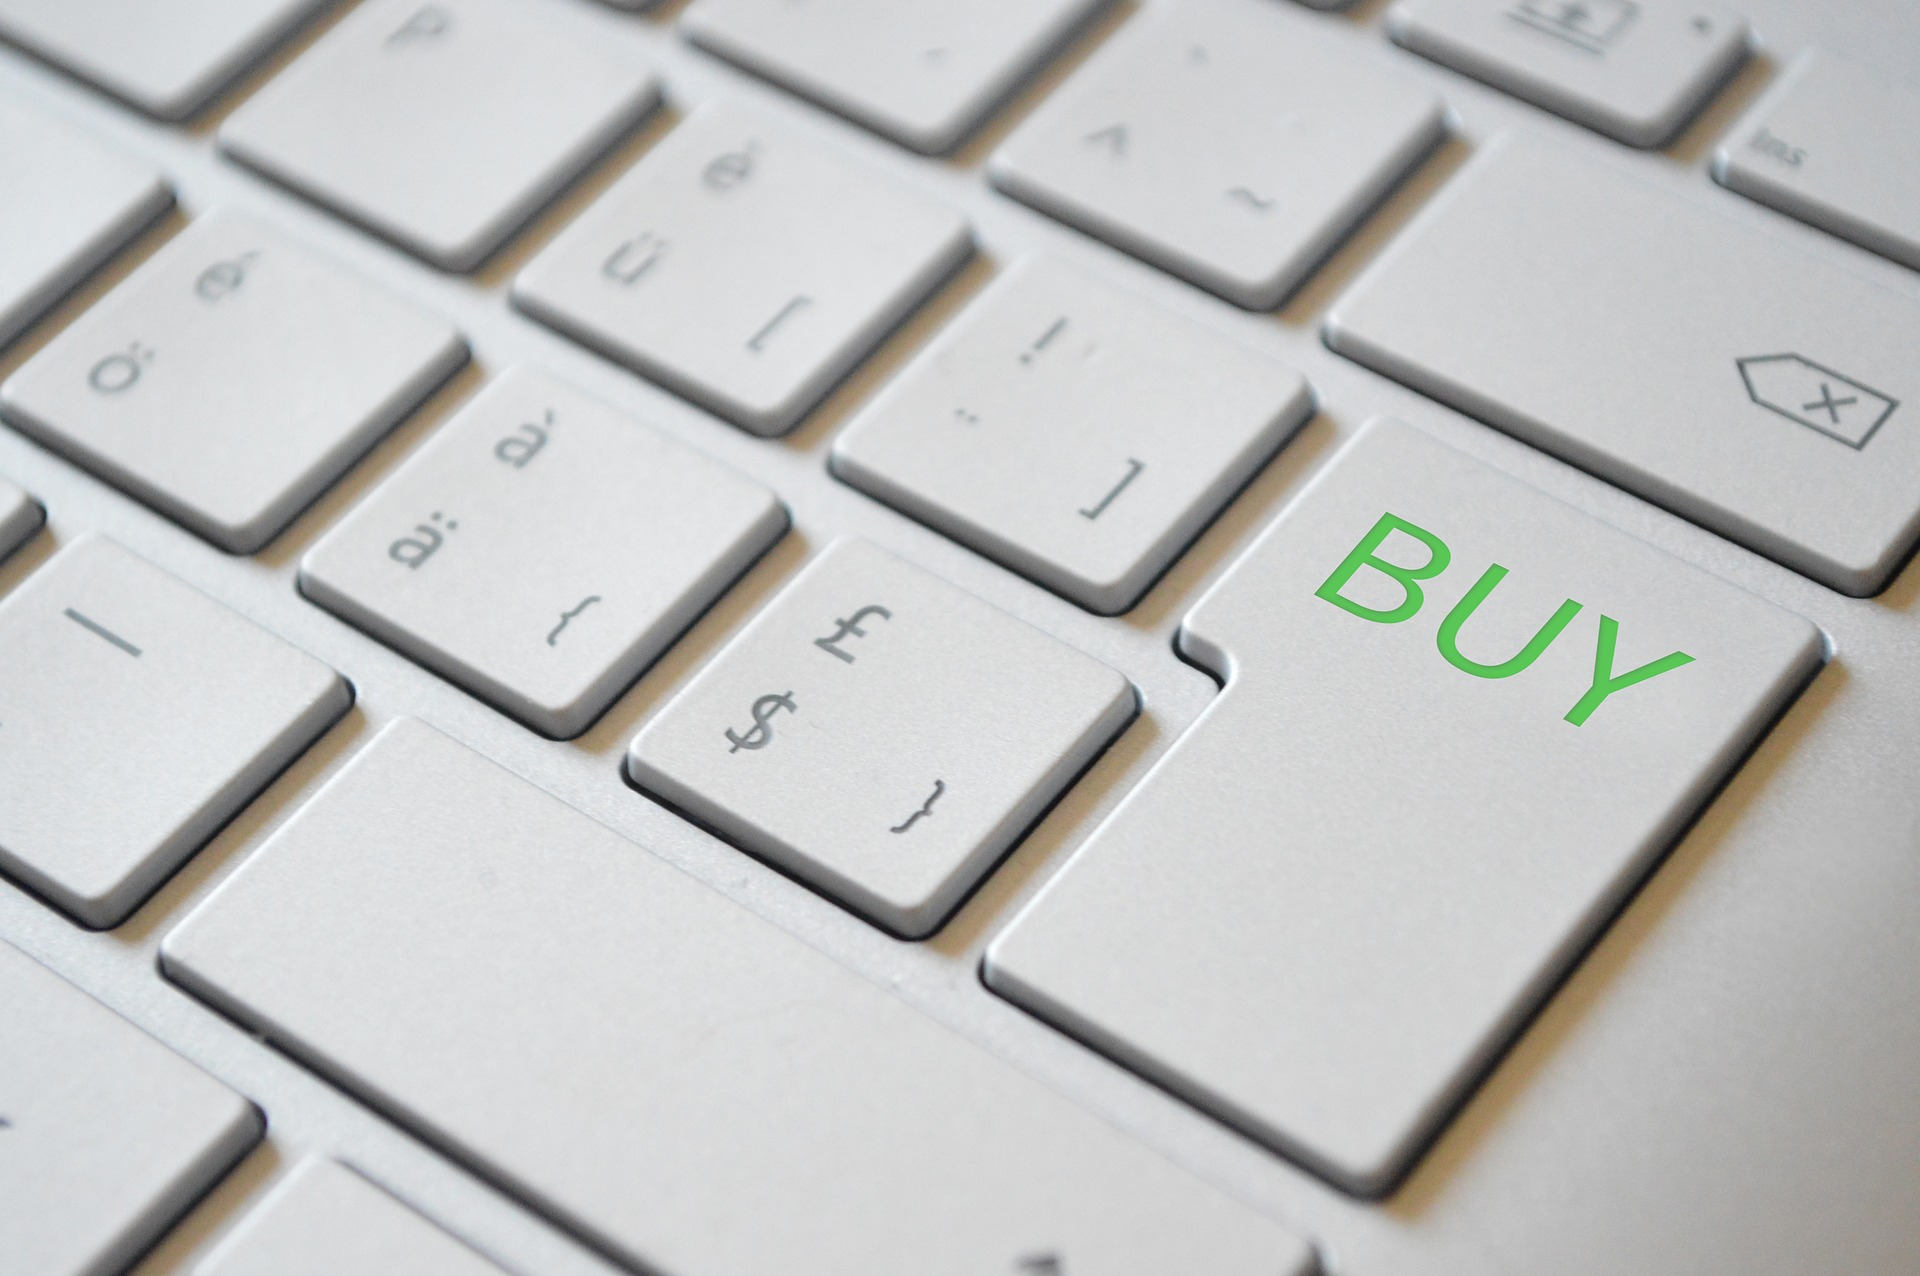 A white keyboard showing the buy button with green color